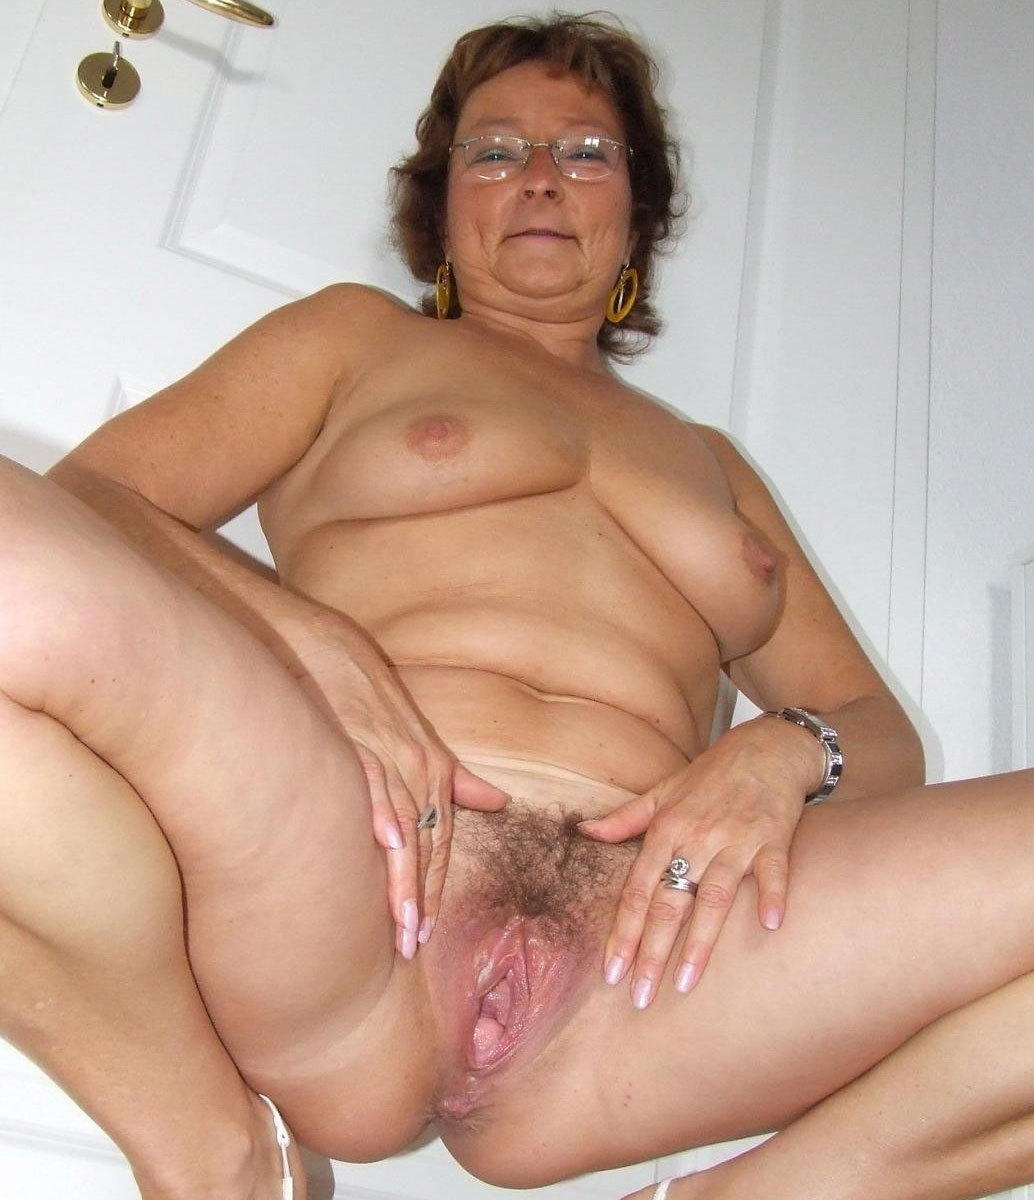 Tits showing chat Sex mom fuck